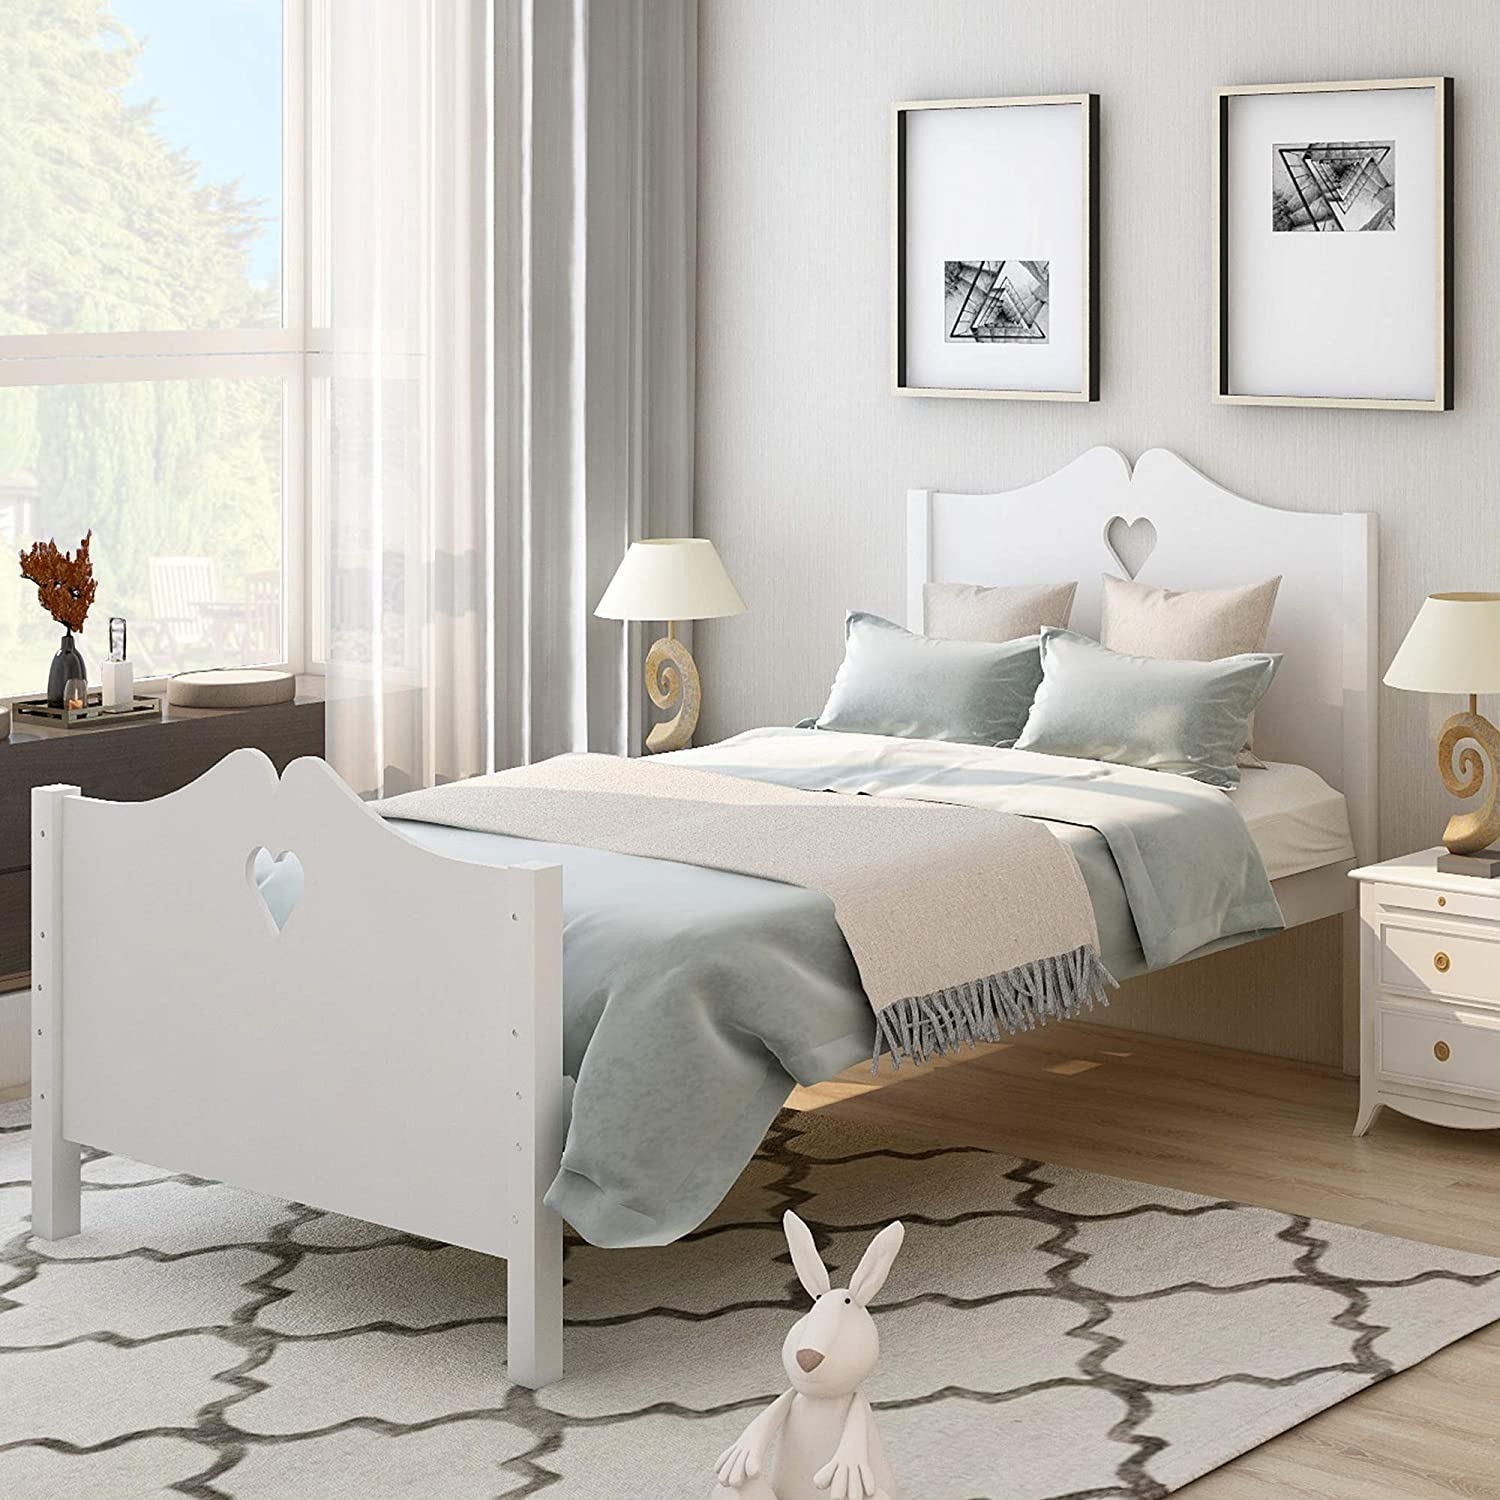 SOZAKKA Bed Frame Twin Platform Bed with Wood Slat Support and Headboard and Footboard (Twin, White)